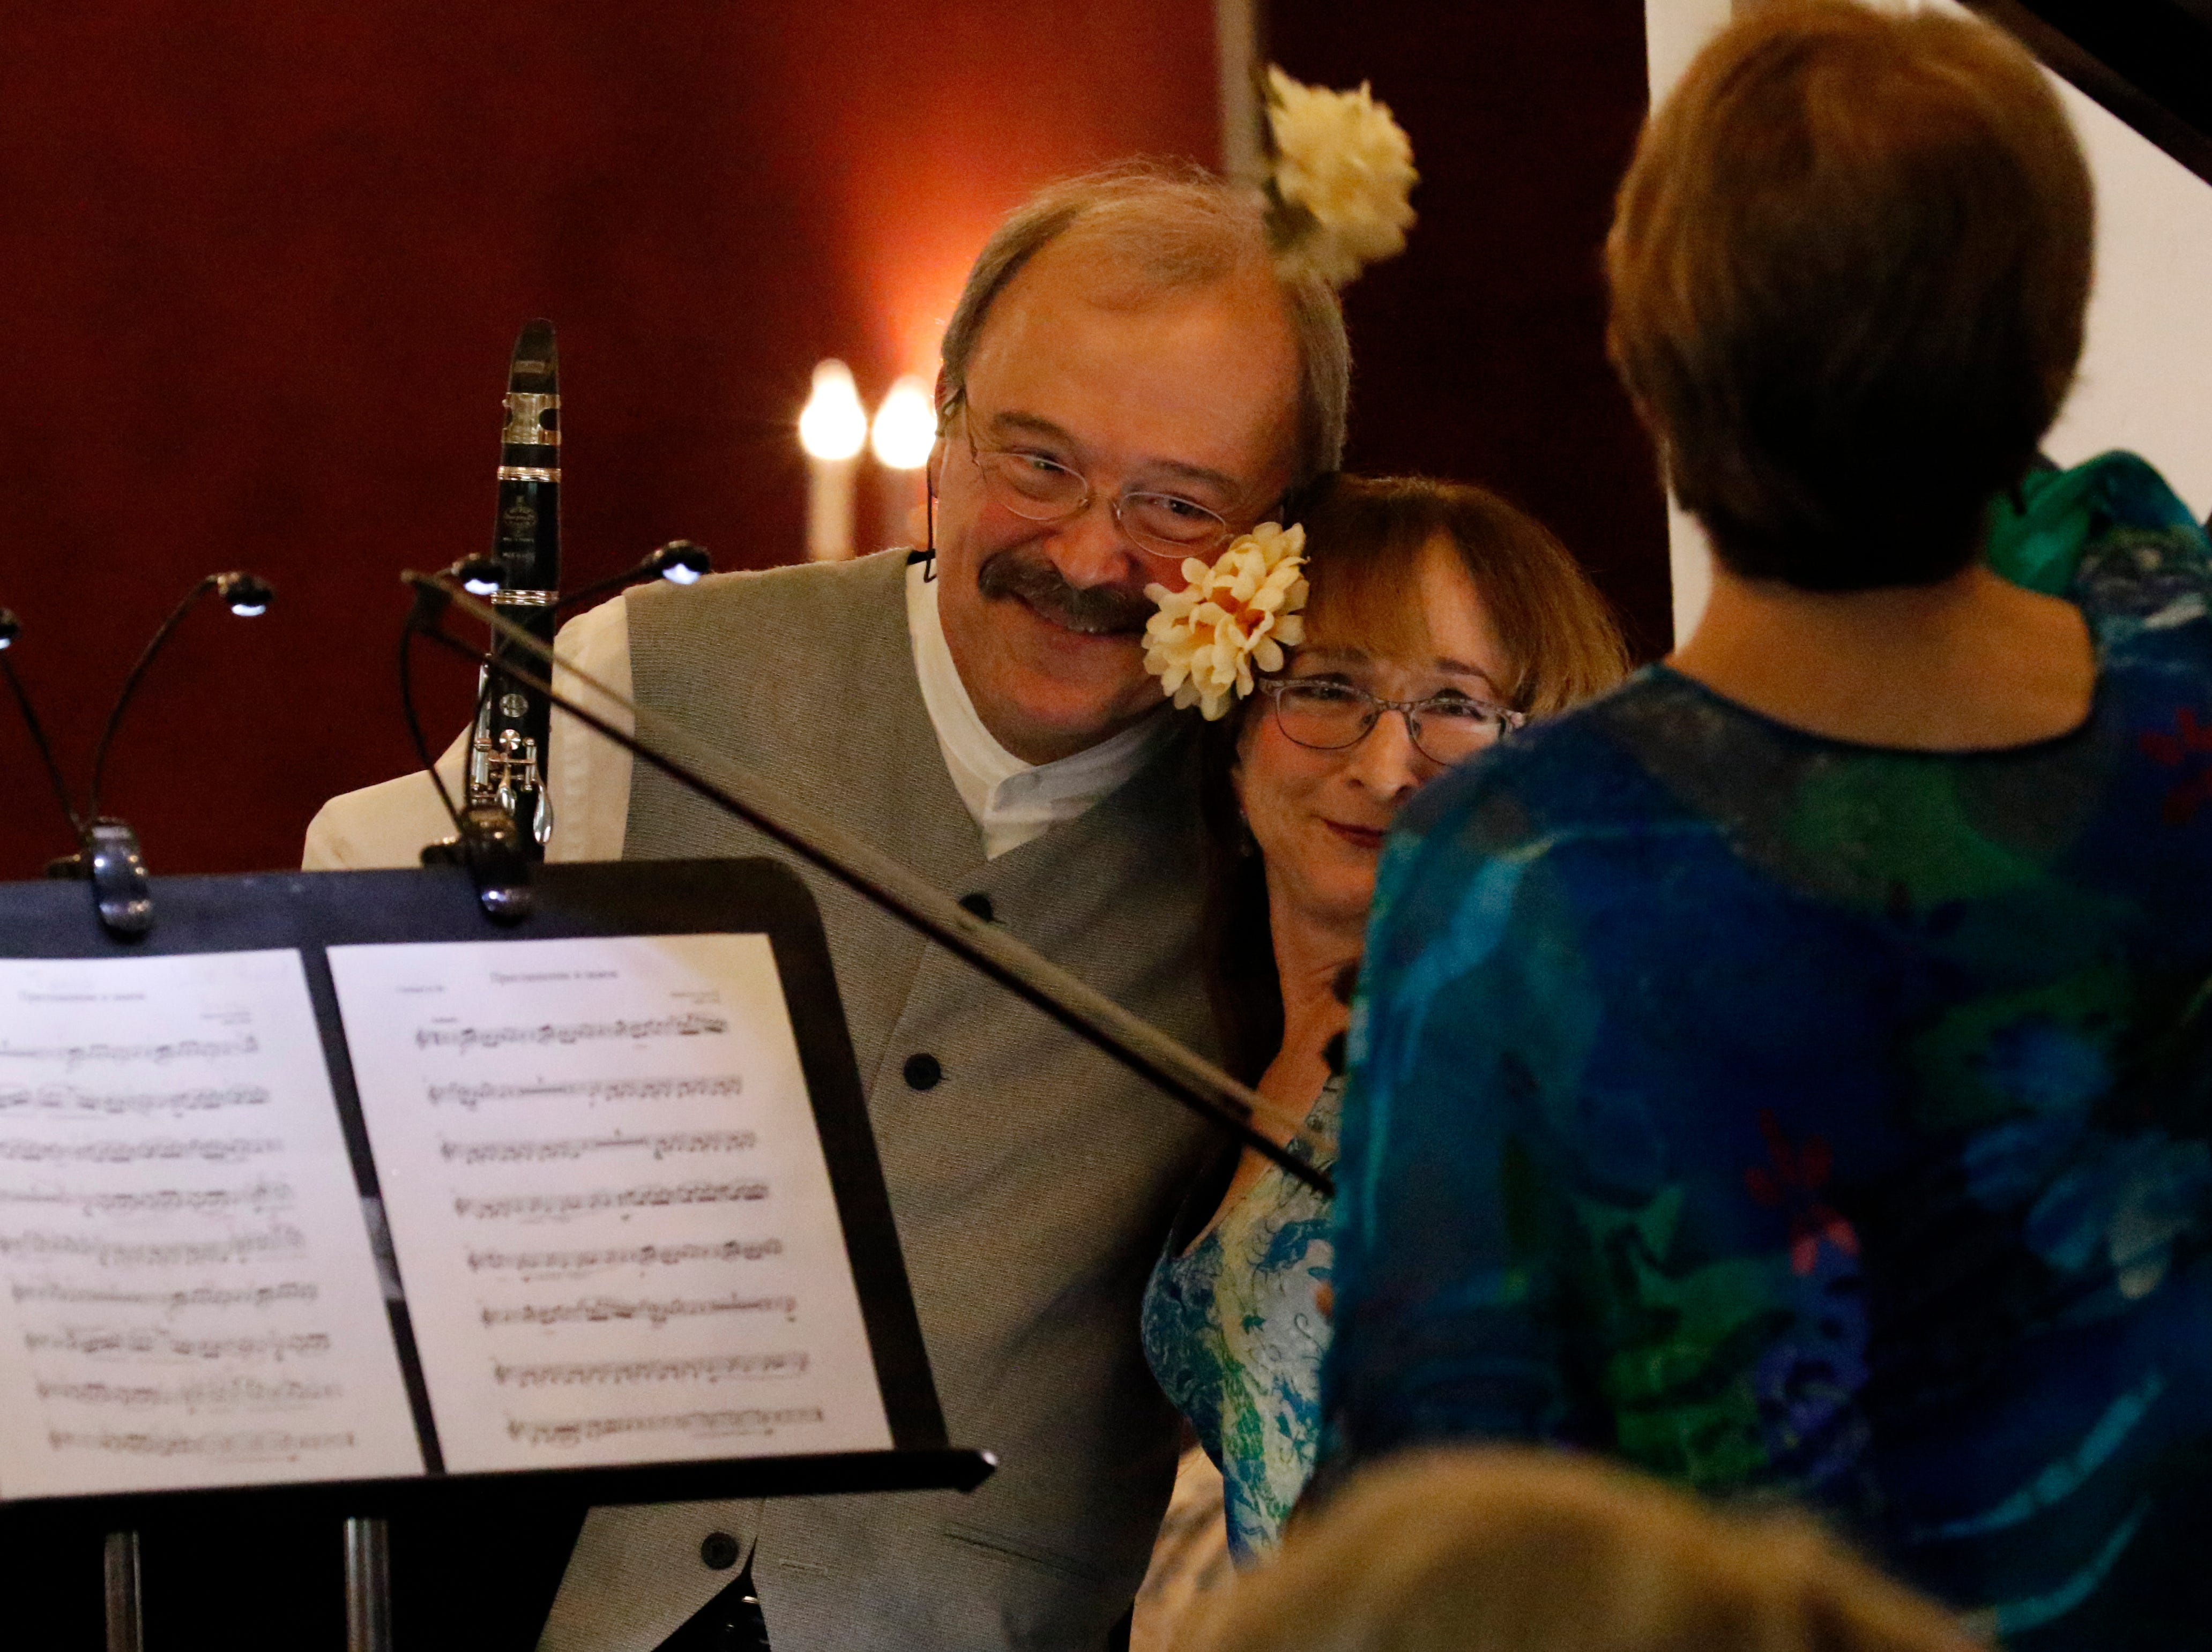 Les Nicholas, left, hugs Judith Lynn Stillman after performing with Stephanie Sant'Ambrogio Friday afternoon, July 27, 2018, during a Lancaster Festival Cafe Concert at the Lancaster Country Club in Hocking Township. The concert featured principal members from different sections of the Lancaster Festival Orchestra.